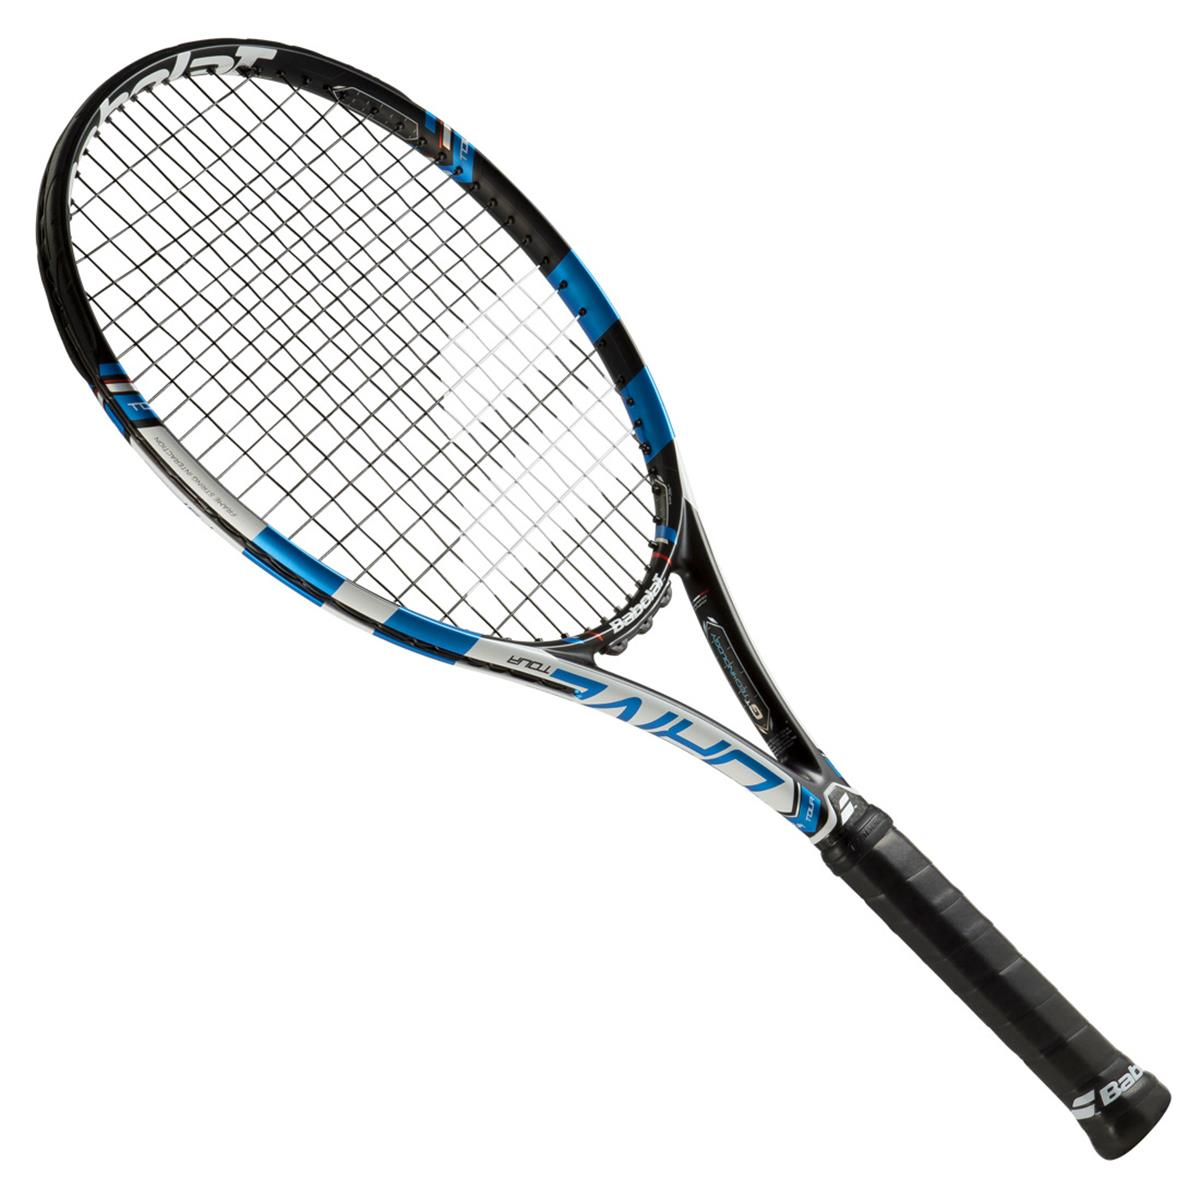 babolat pure drive tour gt plus tennis racket direct tennis. Black Bedroom Furniture Sets. Home Design Ideas